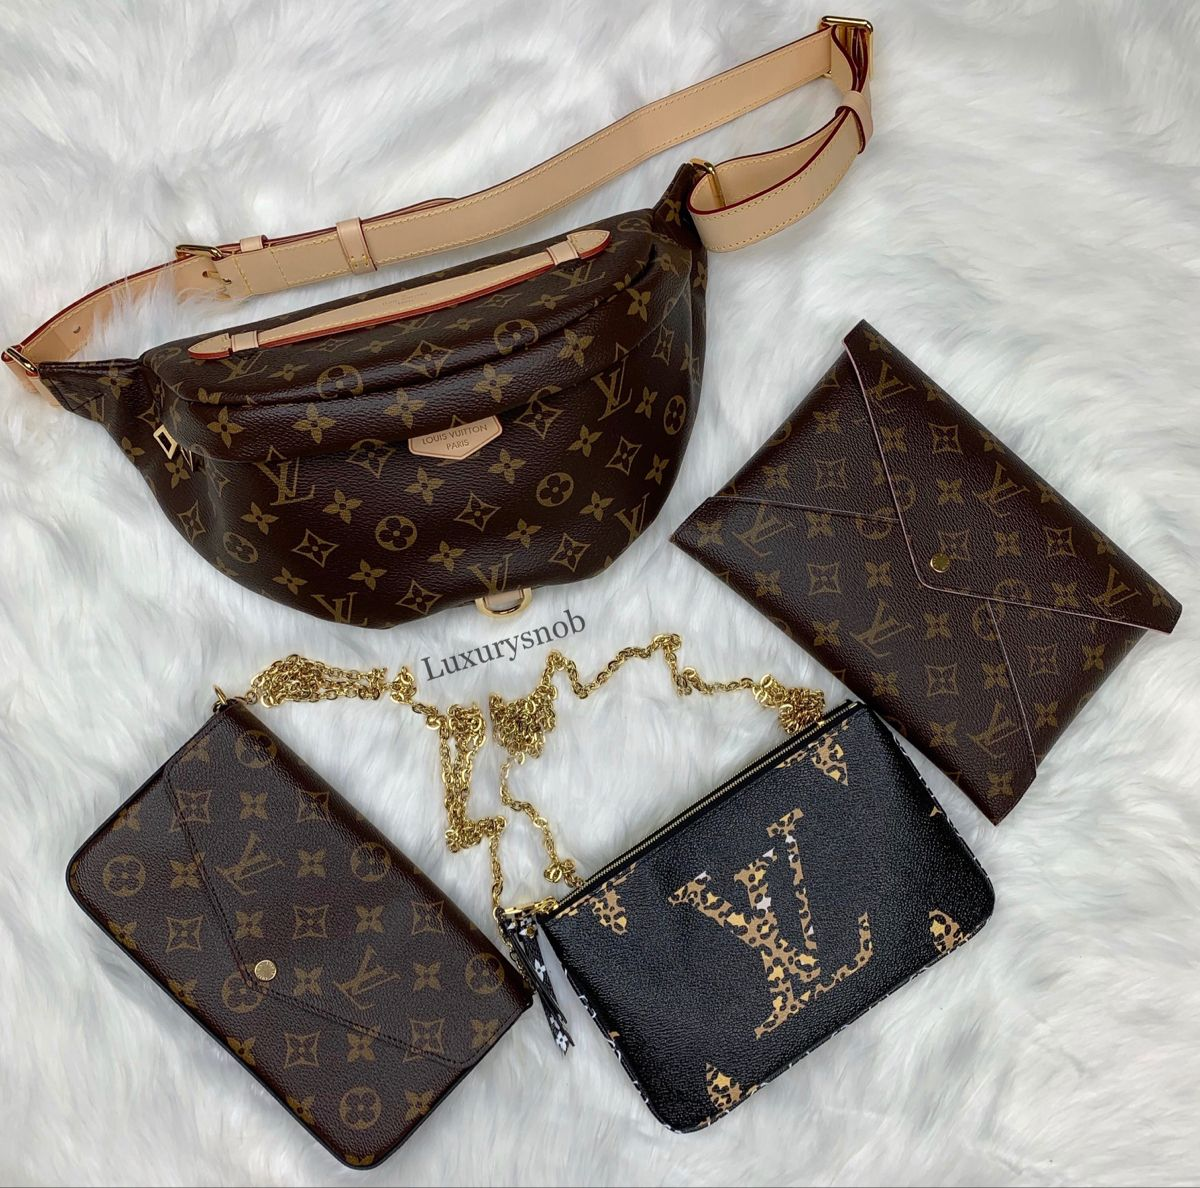 All Brand New Available On The Site In 2020 Louis Vuitton Louis Vuitton Bag Women Handbags